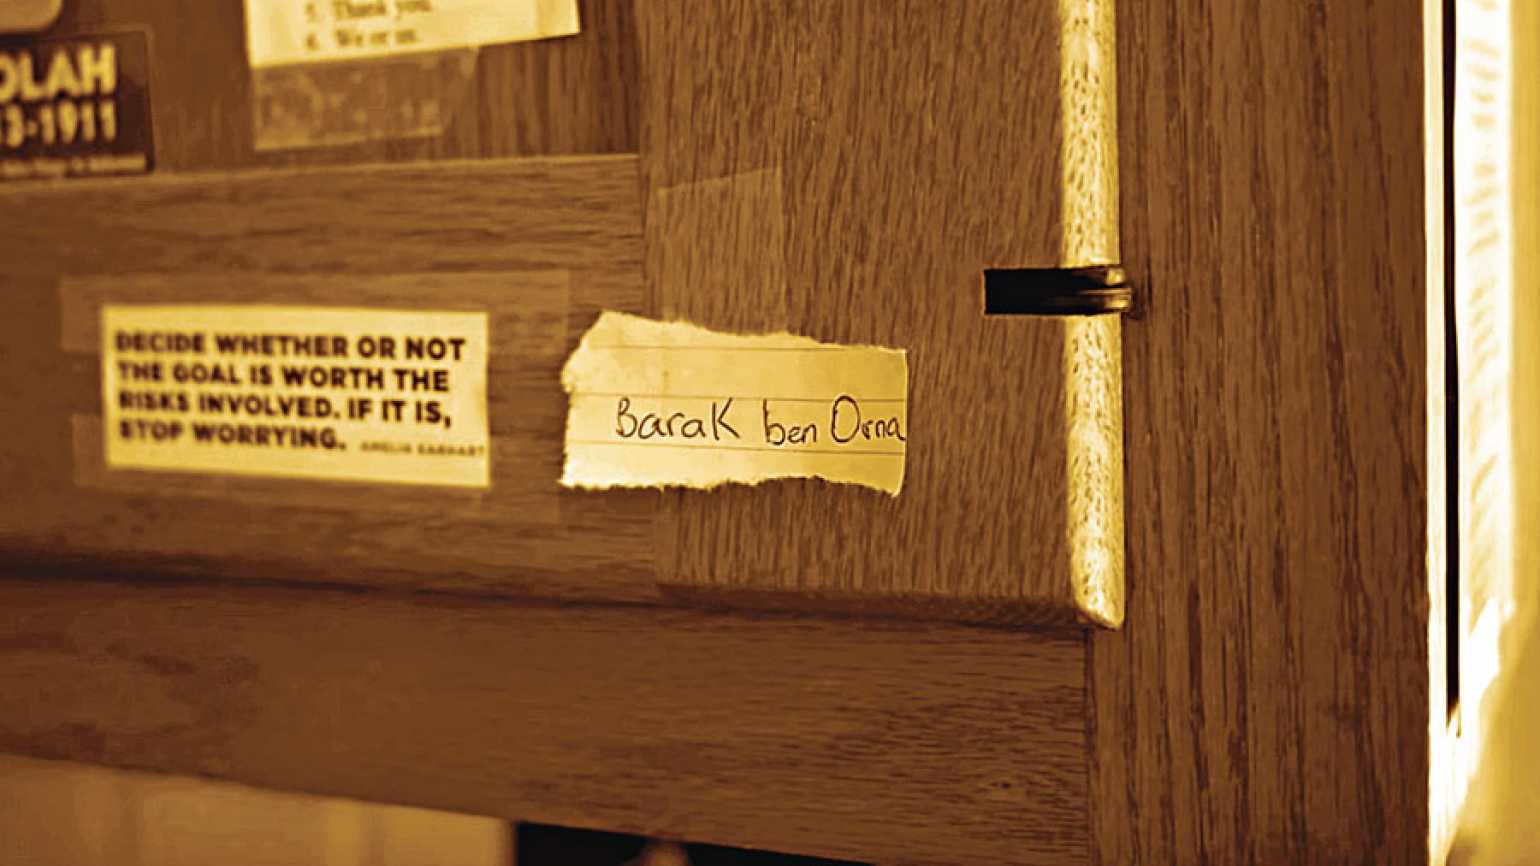 Barak ben Orna's name on a scrap of paper taped to a kitchen cabinet